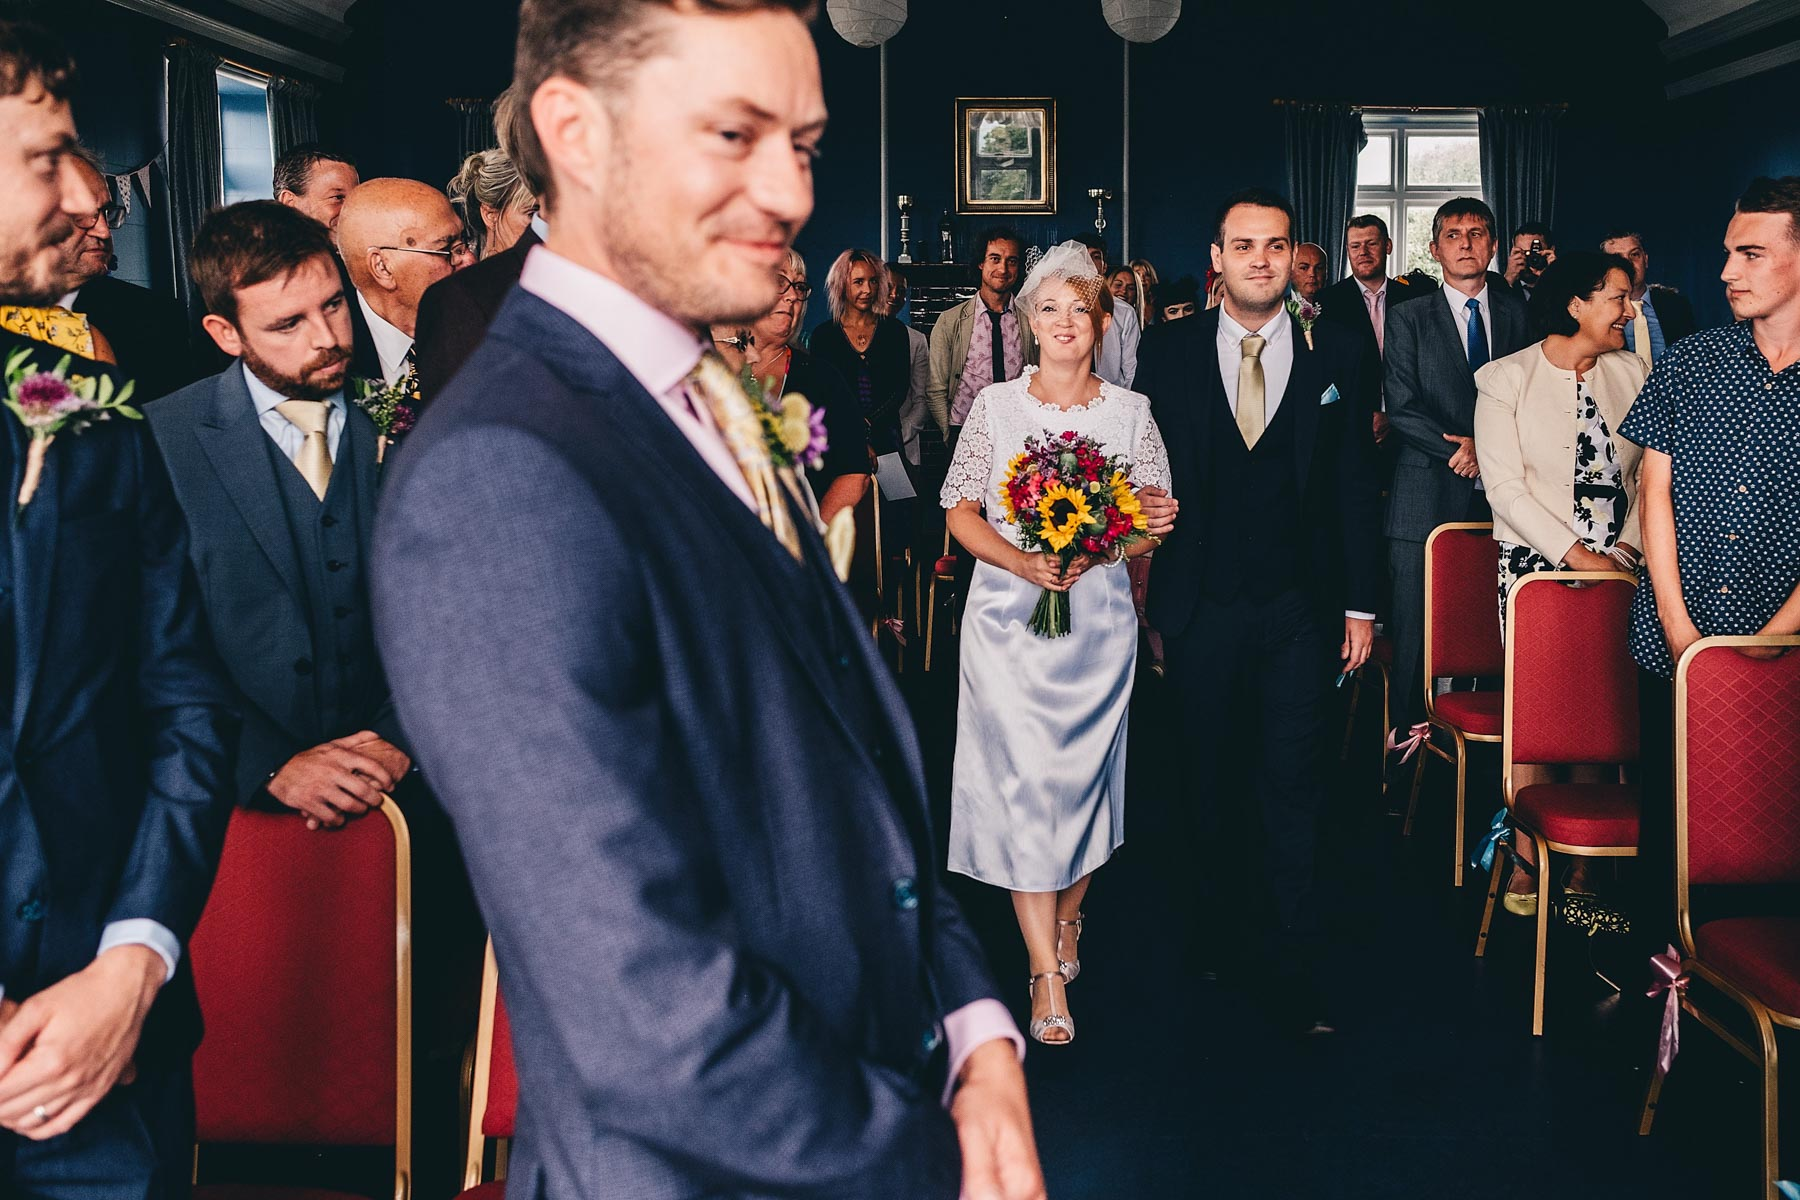 Groom smiles while bride walks up the aisle